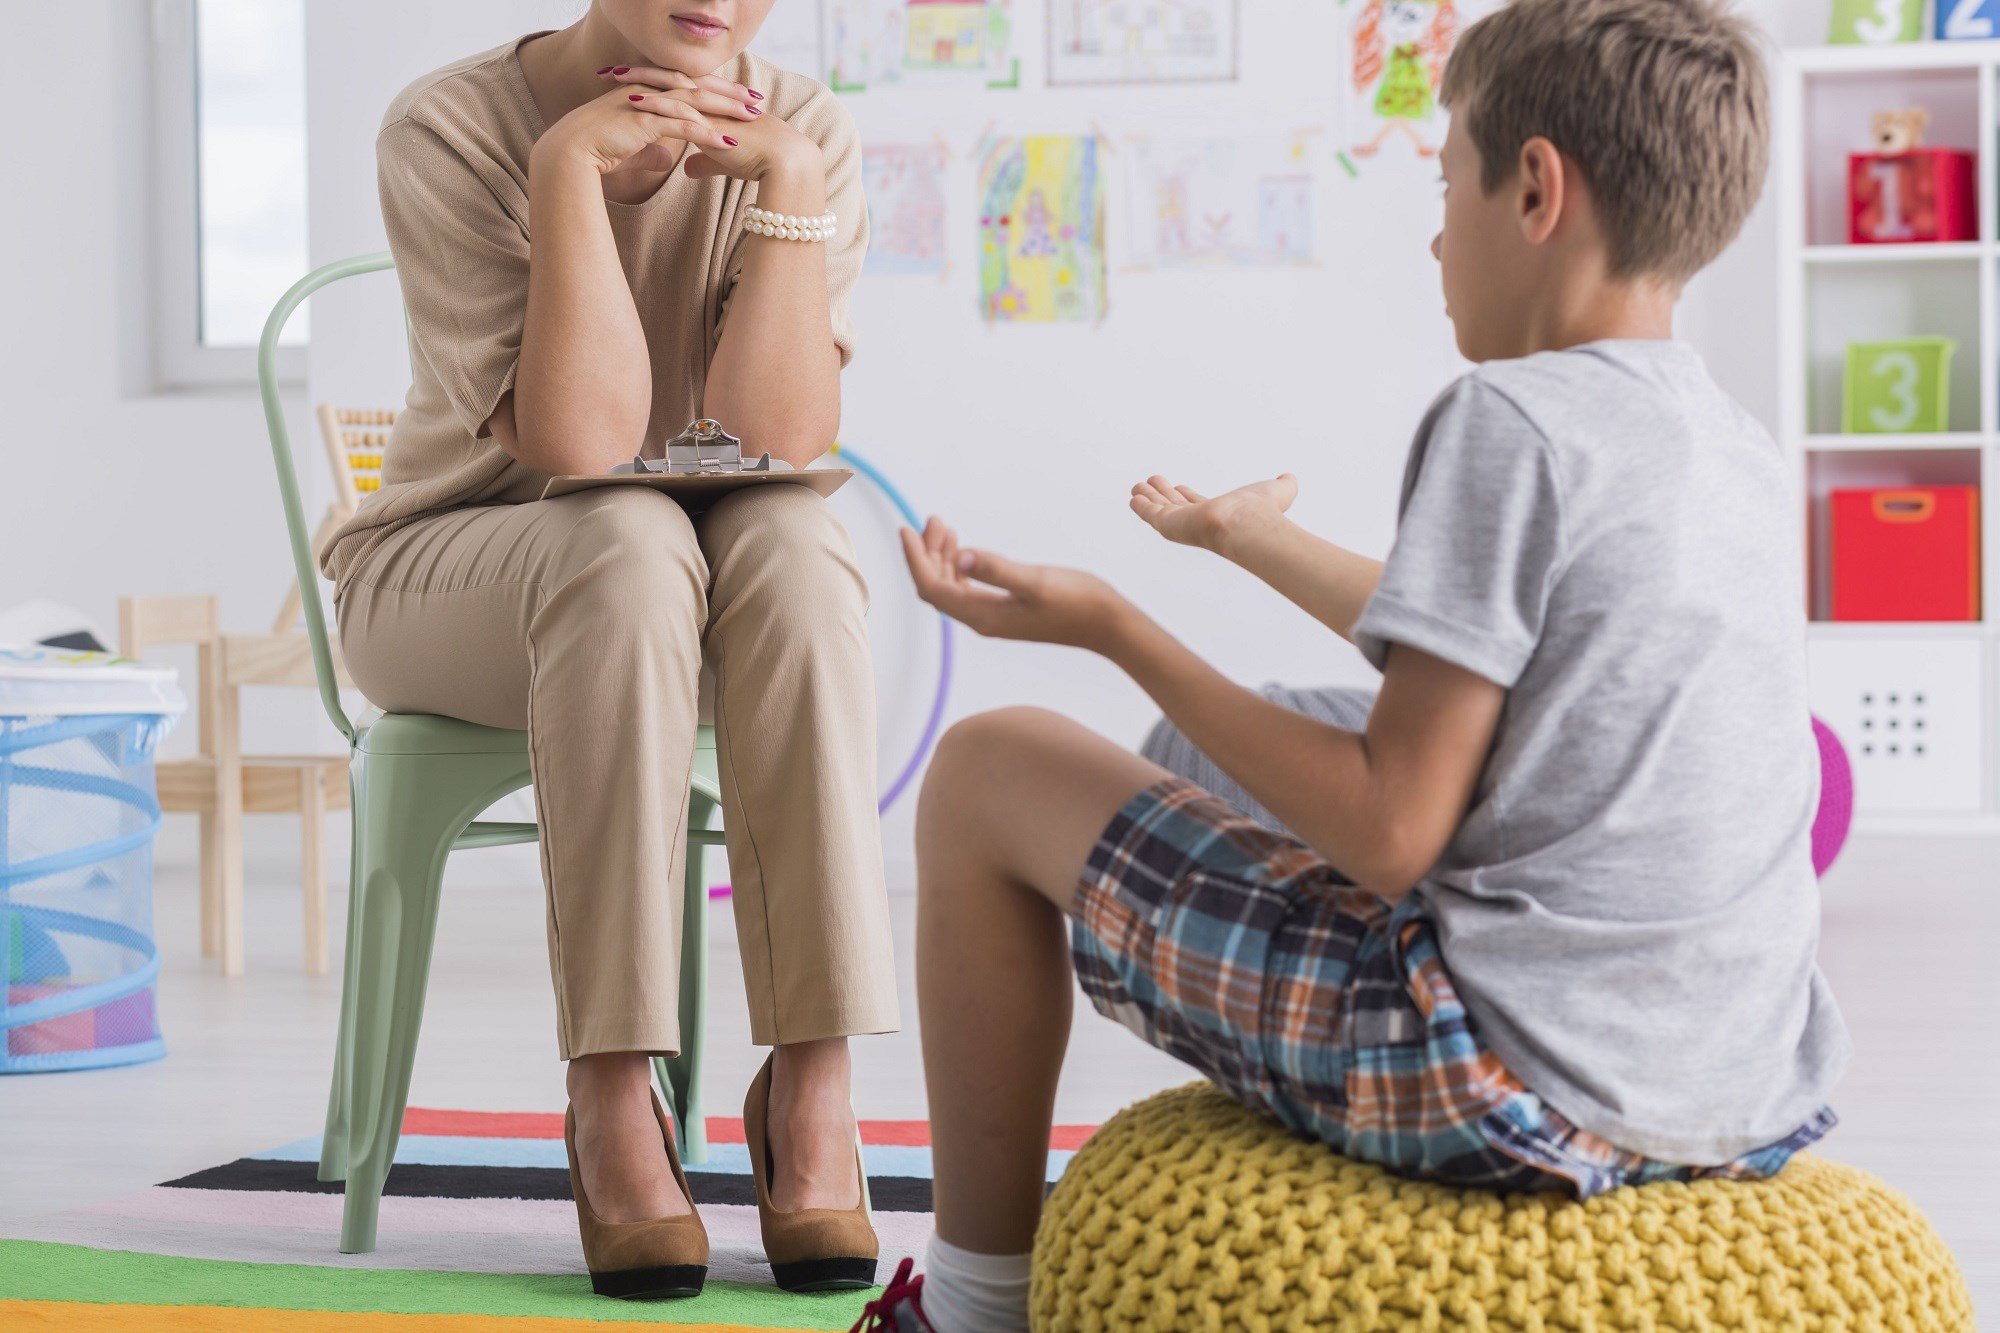 In pediatric patients with headache pain, psychological therapies were associated with a reduction in the frequency of pain after treatment but not at follow-up.